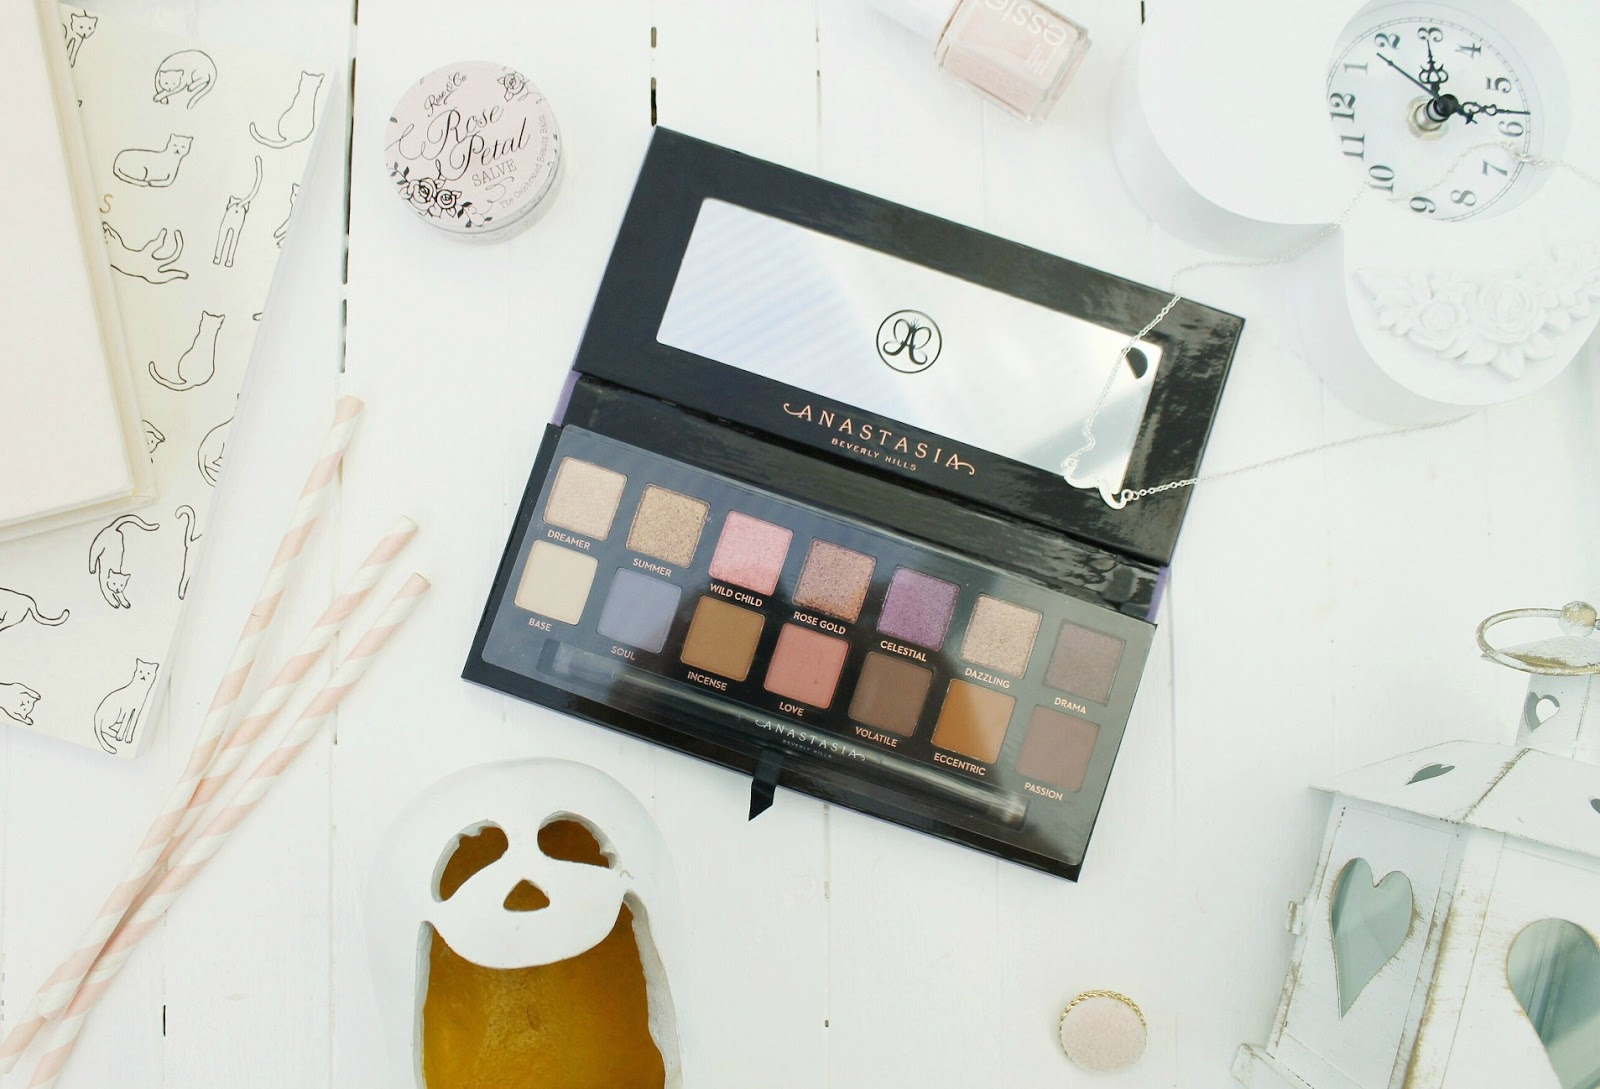 ABH Norvina palette international giveaway